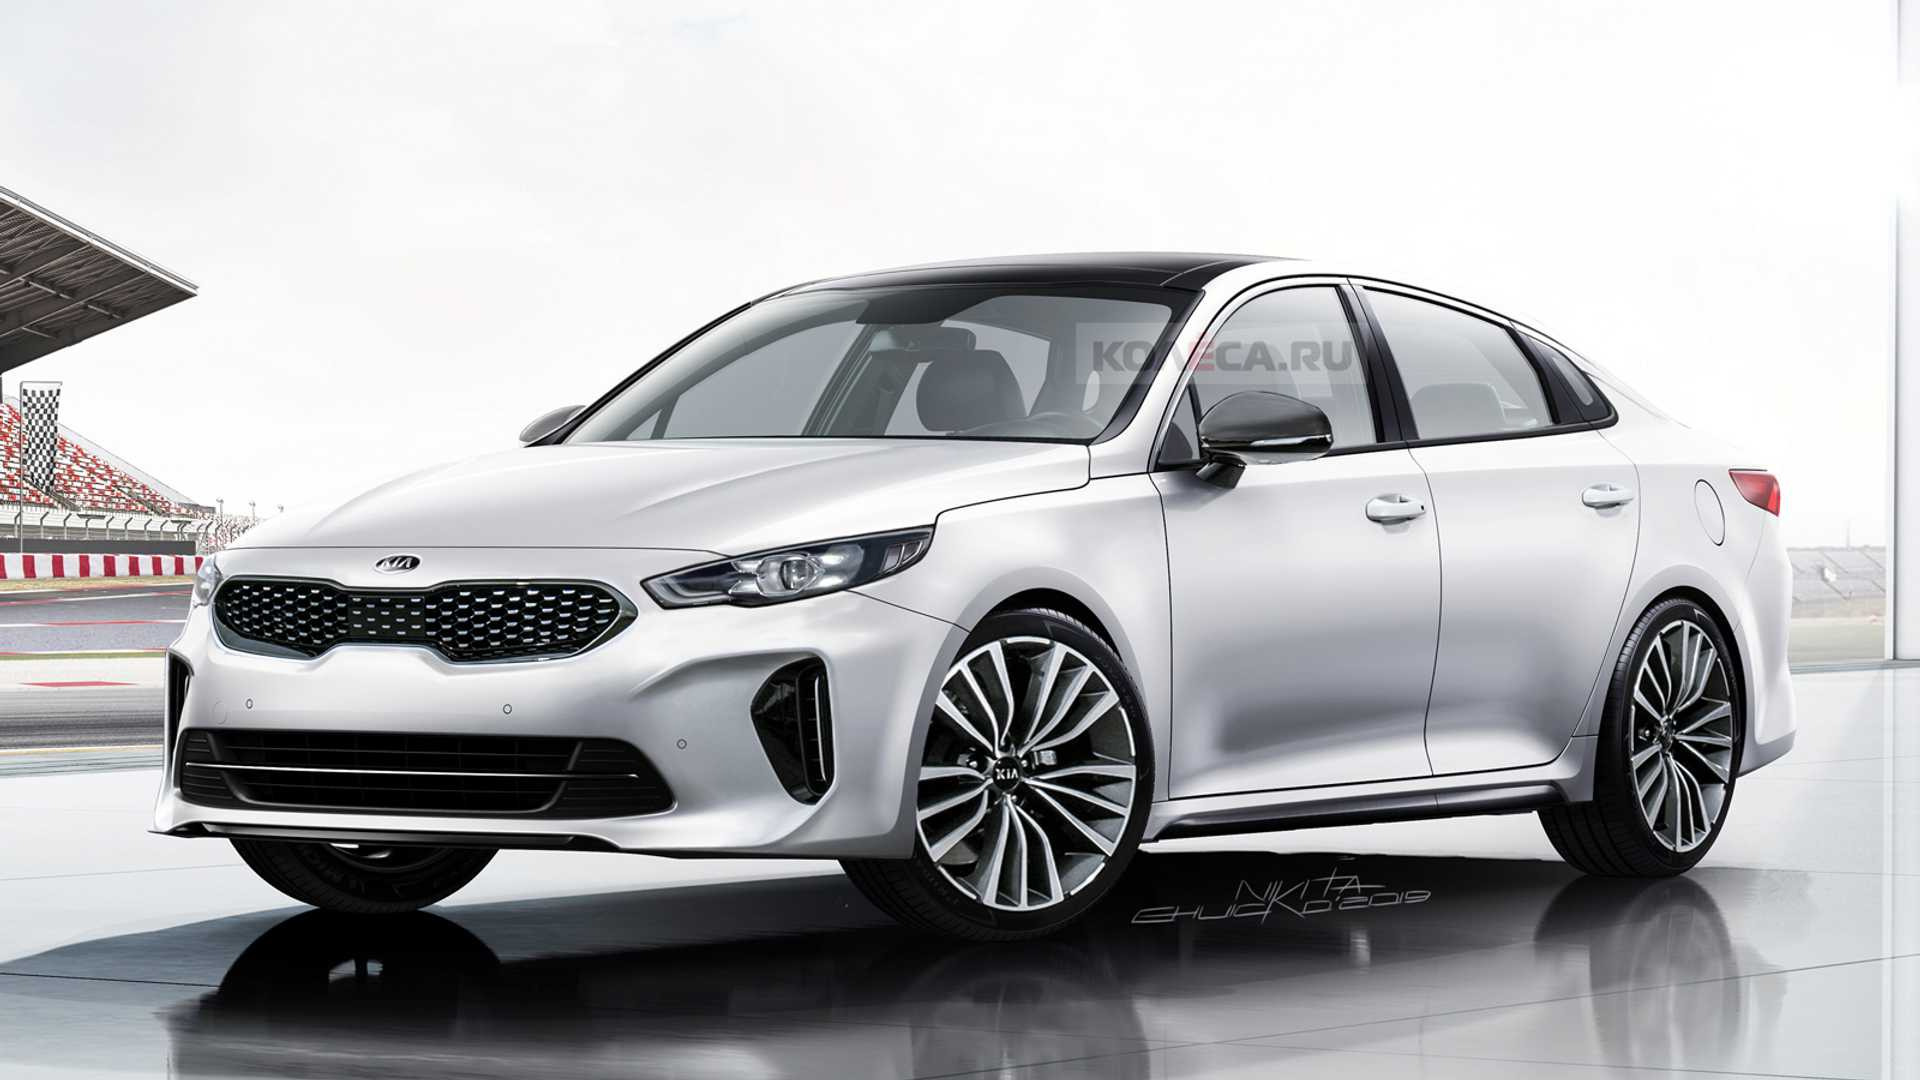 Kia Optima Gets Stylish Look In Next-Gen Rendering - 2022 Kia Optima White Concept, Rumor, Release Date